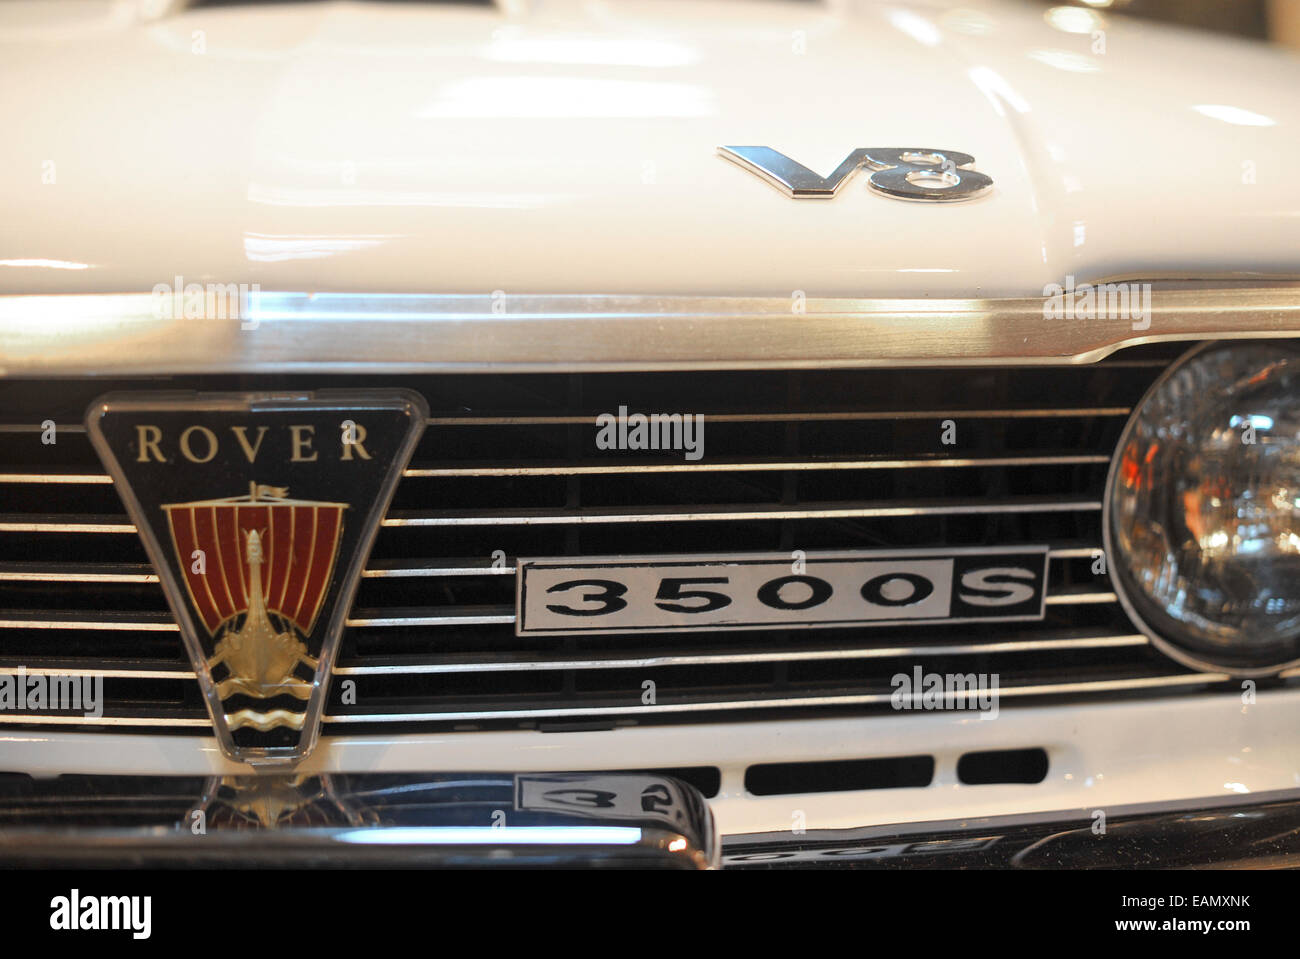 Series 1 Rover p6 3500 badge detail classic car at the 2014 NEC classic car show Stock Photo